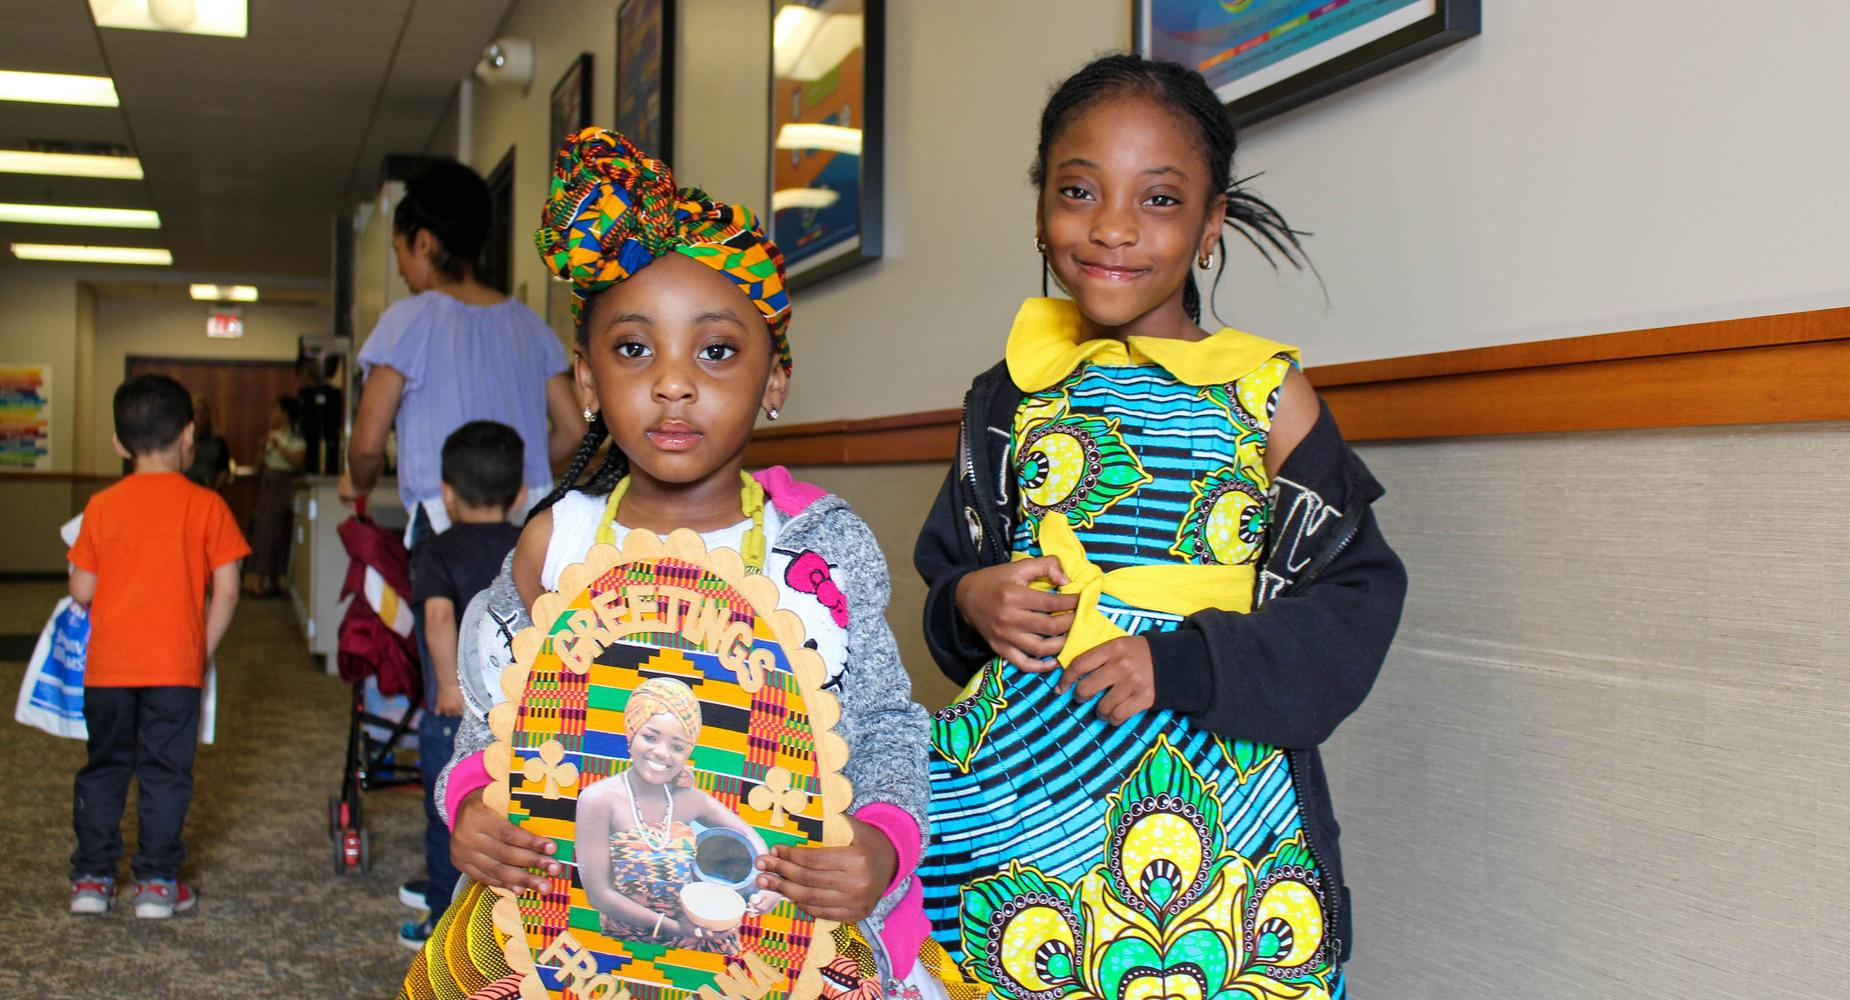 Two Black girls smile for the camera while proudly displaying their traditional dresses and head garments